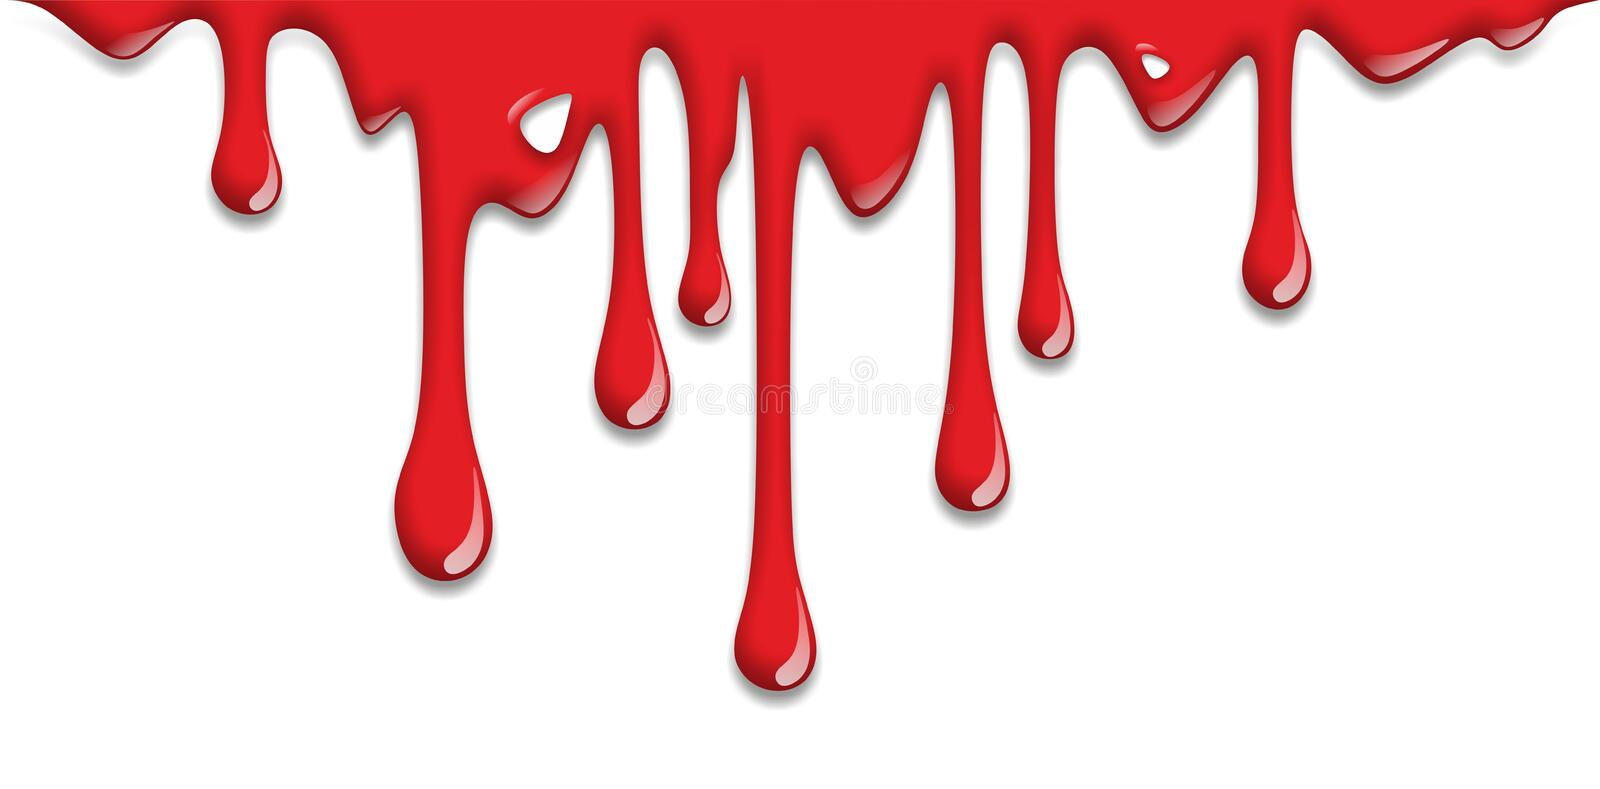 dripping blood stock illustration illustration of blood 34893797 rh dreamstime com Blood Clip Art dripping blood clipart border